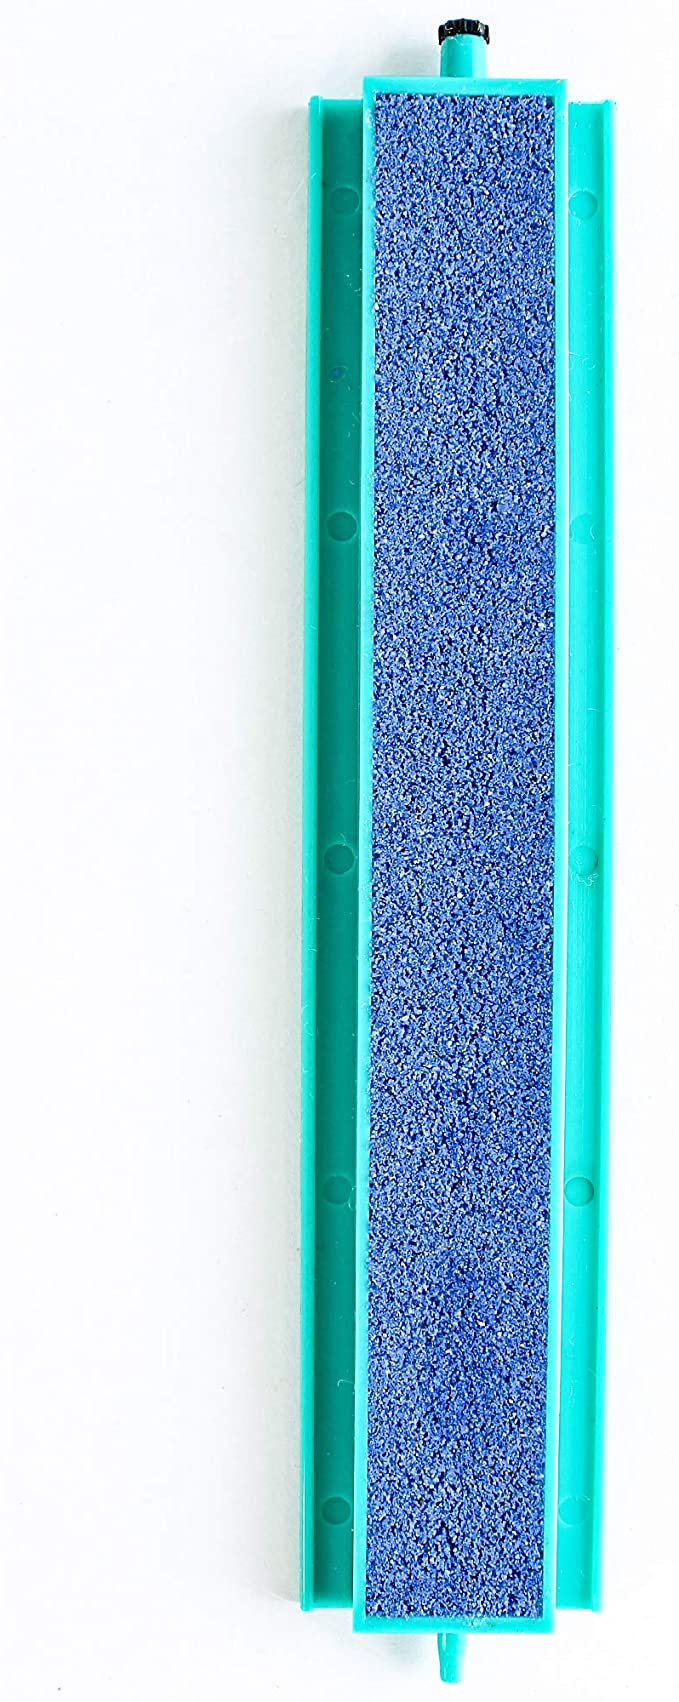 Penn-Plax AS2 product image 4